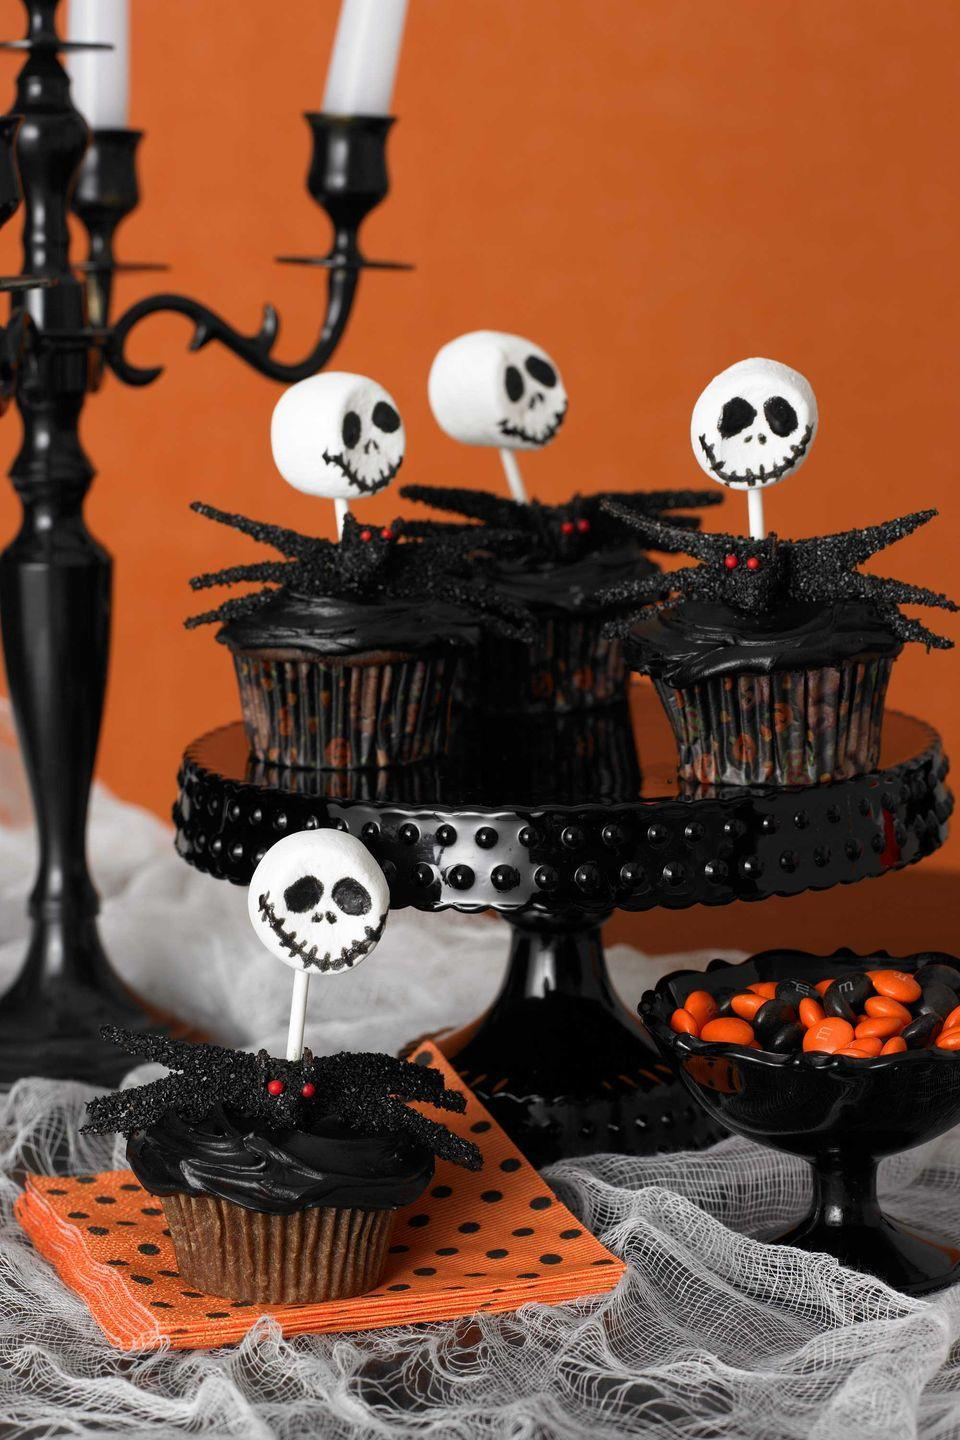 """<p>All it takes to make these skeletal creatures is marshmallows, devil's food cake, and whatever decorations appeal to you!</p><p><a href=""""https://www.womansday.com/food-recipes/food-drinks/recipes/a9352/skeleton-cupcakes-121387/"""" rel=""""nofollow noopener"""" target=""""_blank"""" data-ylk=""""slk:Get the Creepy Skeleton Cupcakes recipe."""" class=""""link rapid-noclick-resp""""><em>Get the Creepy Skeleton Cupcakes recipe.</em></a></p>"""